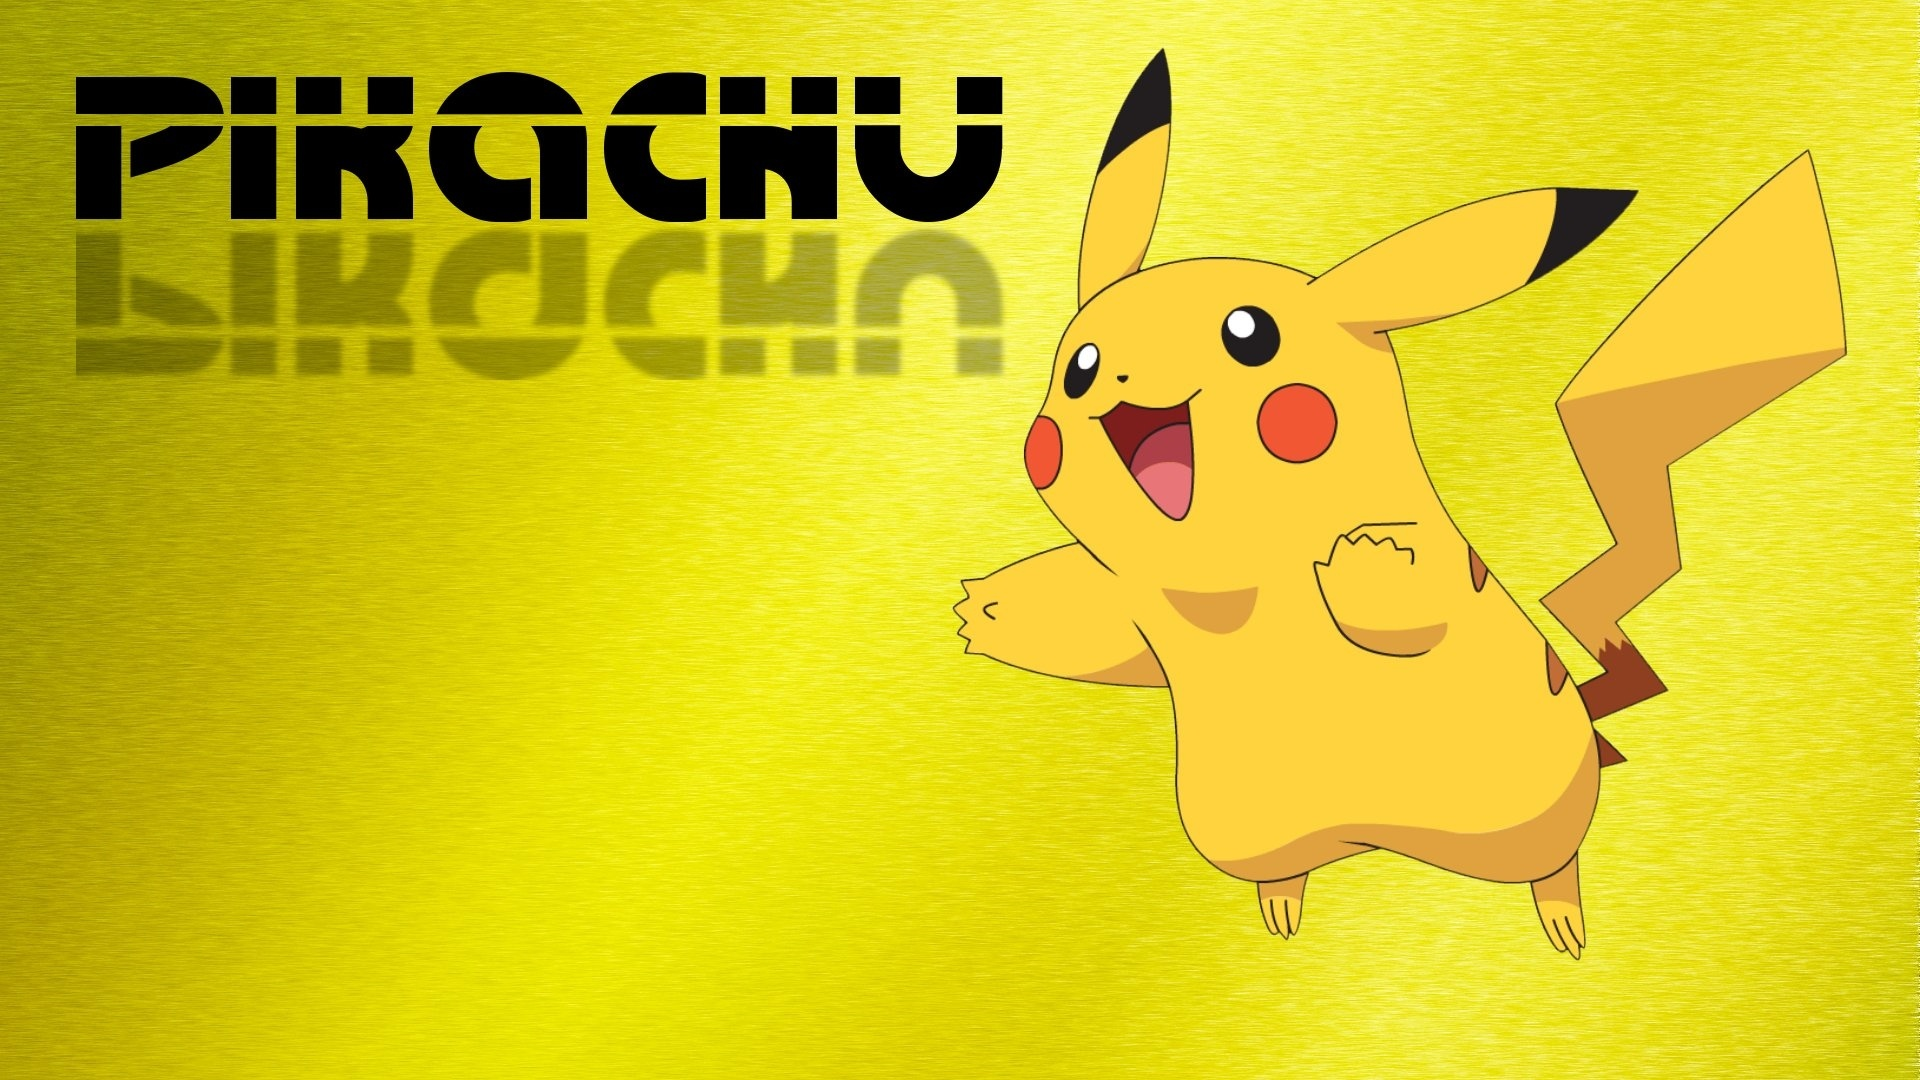 Pikachu free background